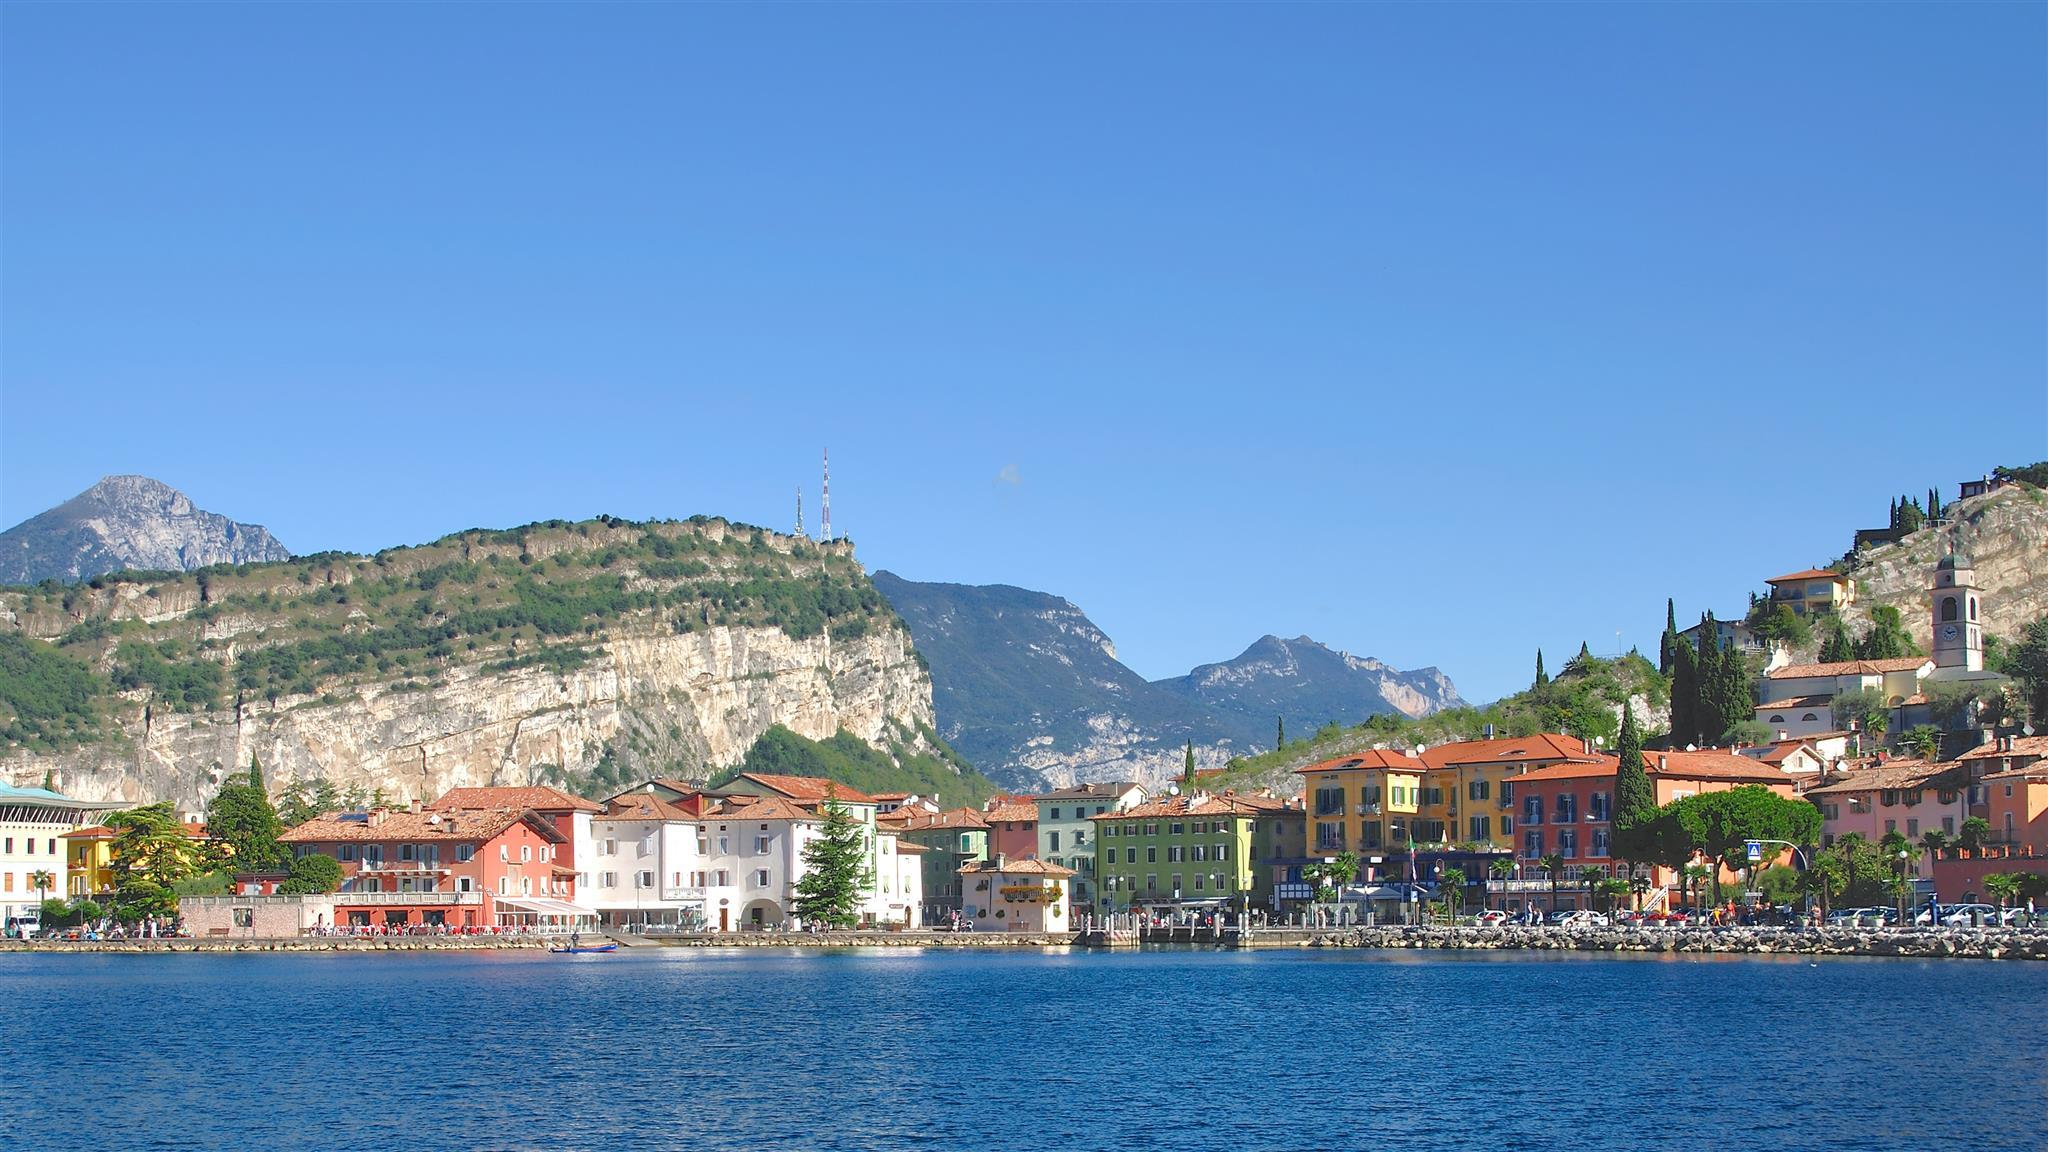 Hotel Caminetto Garda 10 Best Nago Torbole Hotels Hd Photos Reviews Of Hotels In Nago